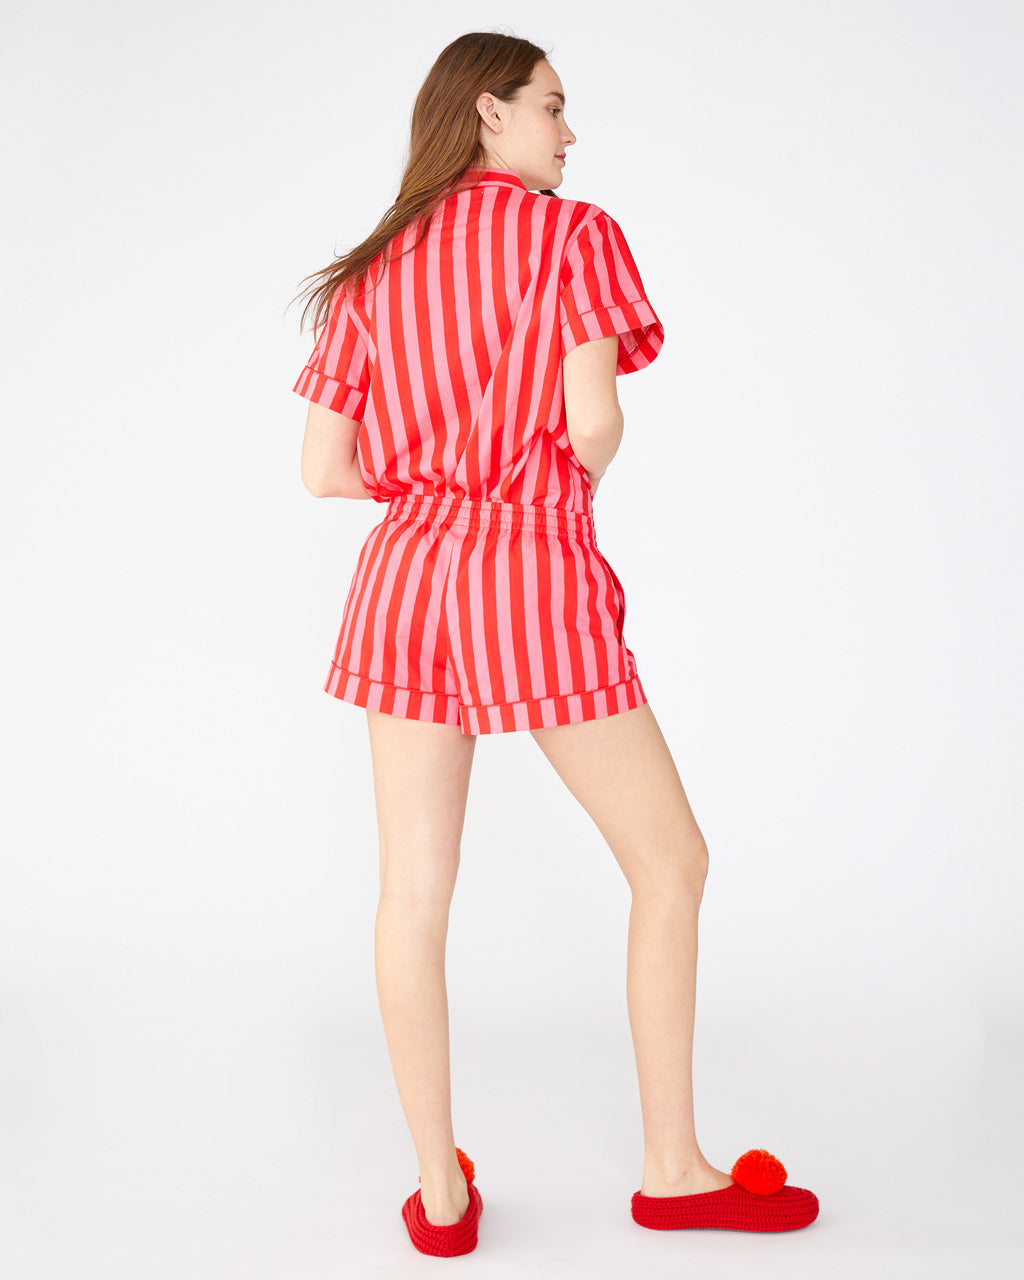 Red and pink vertical stripe leisure shorts with side seam pockets shown on model